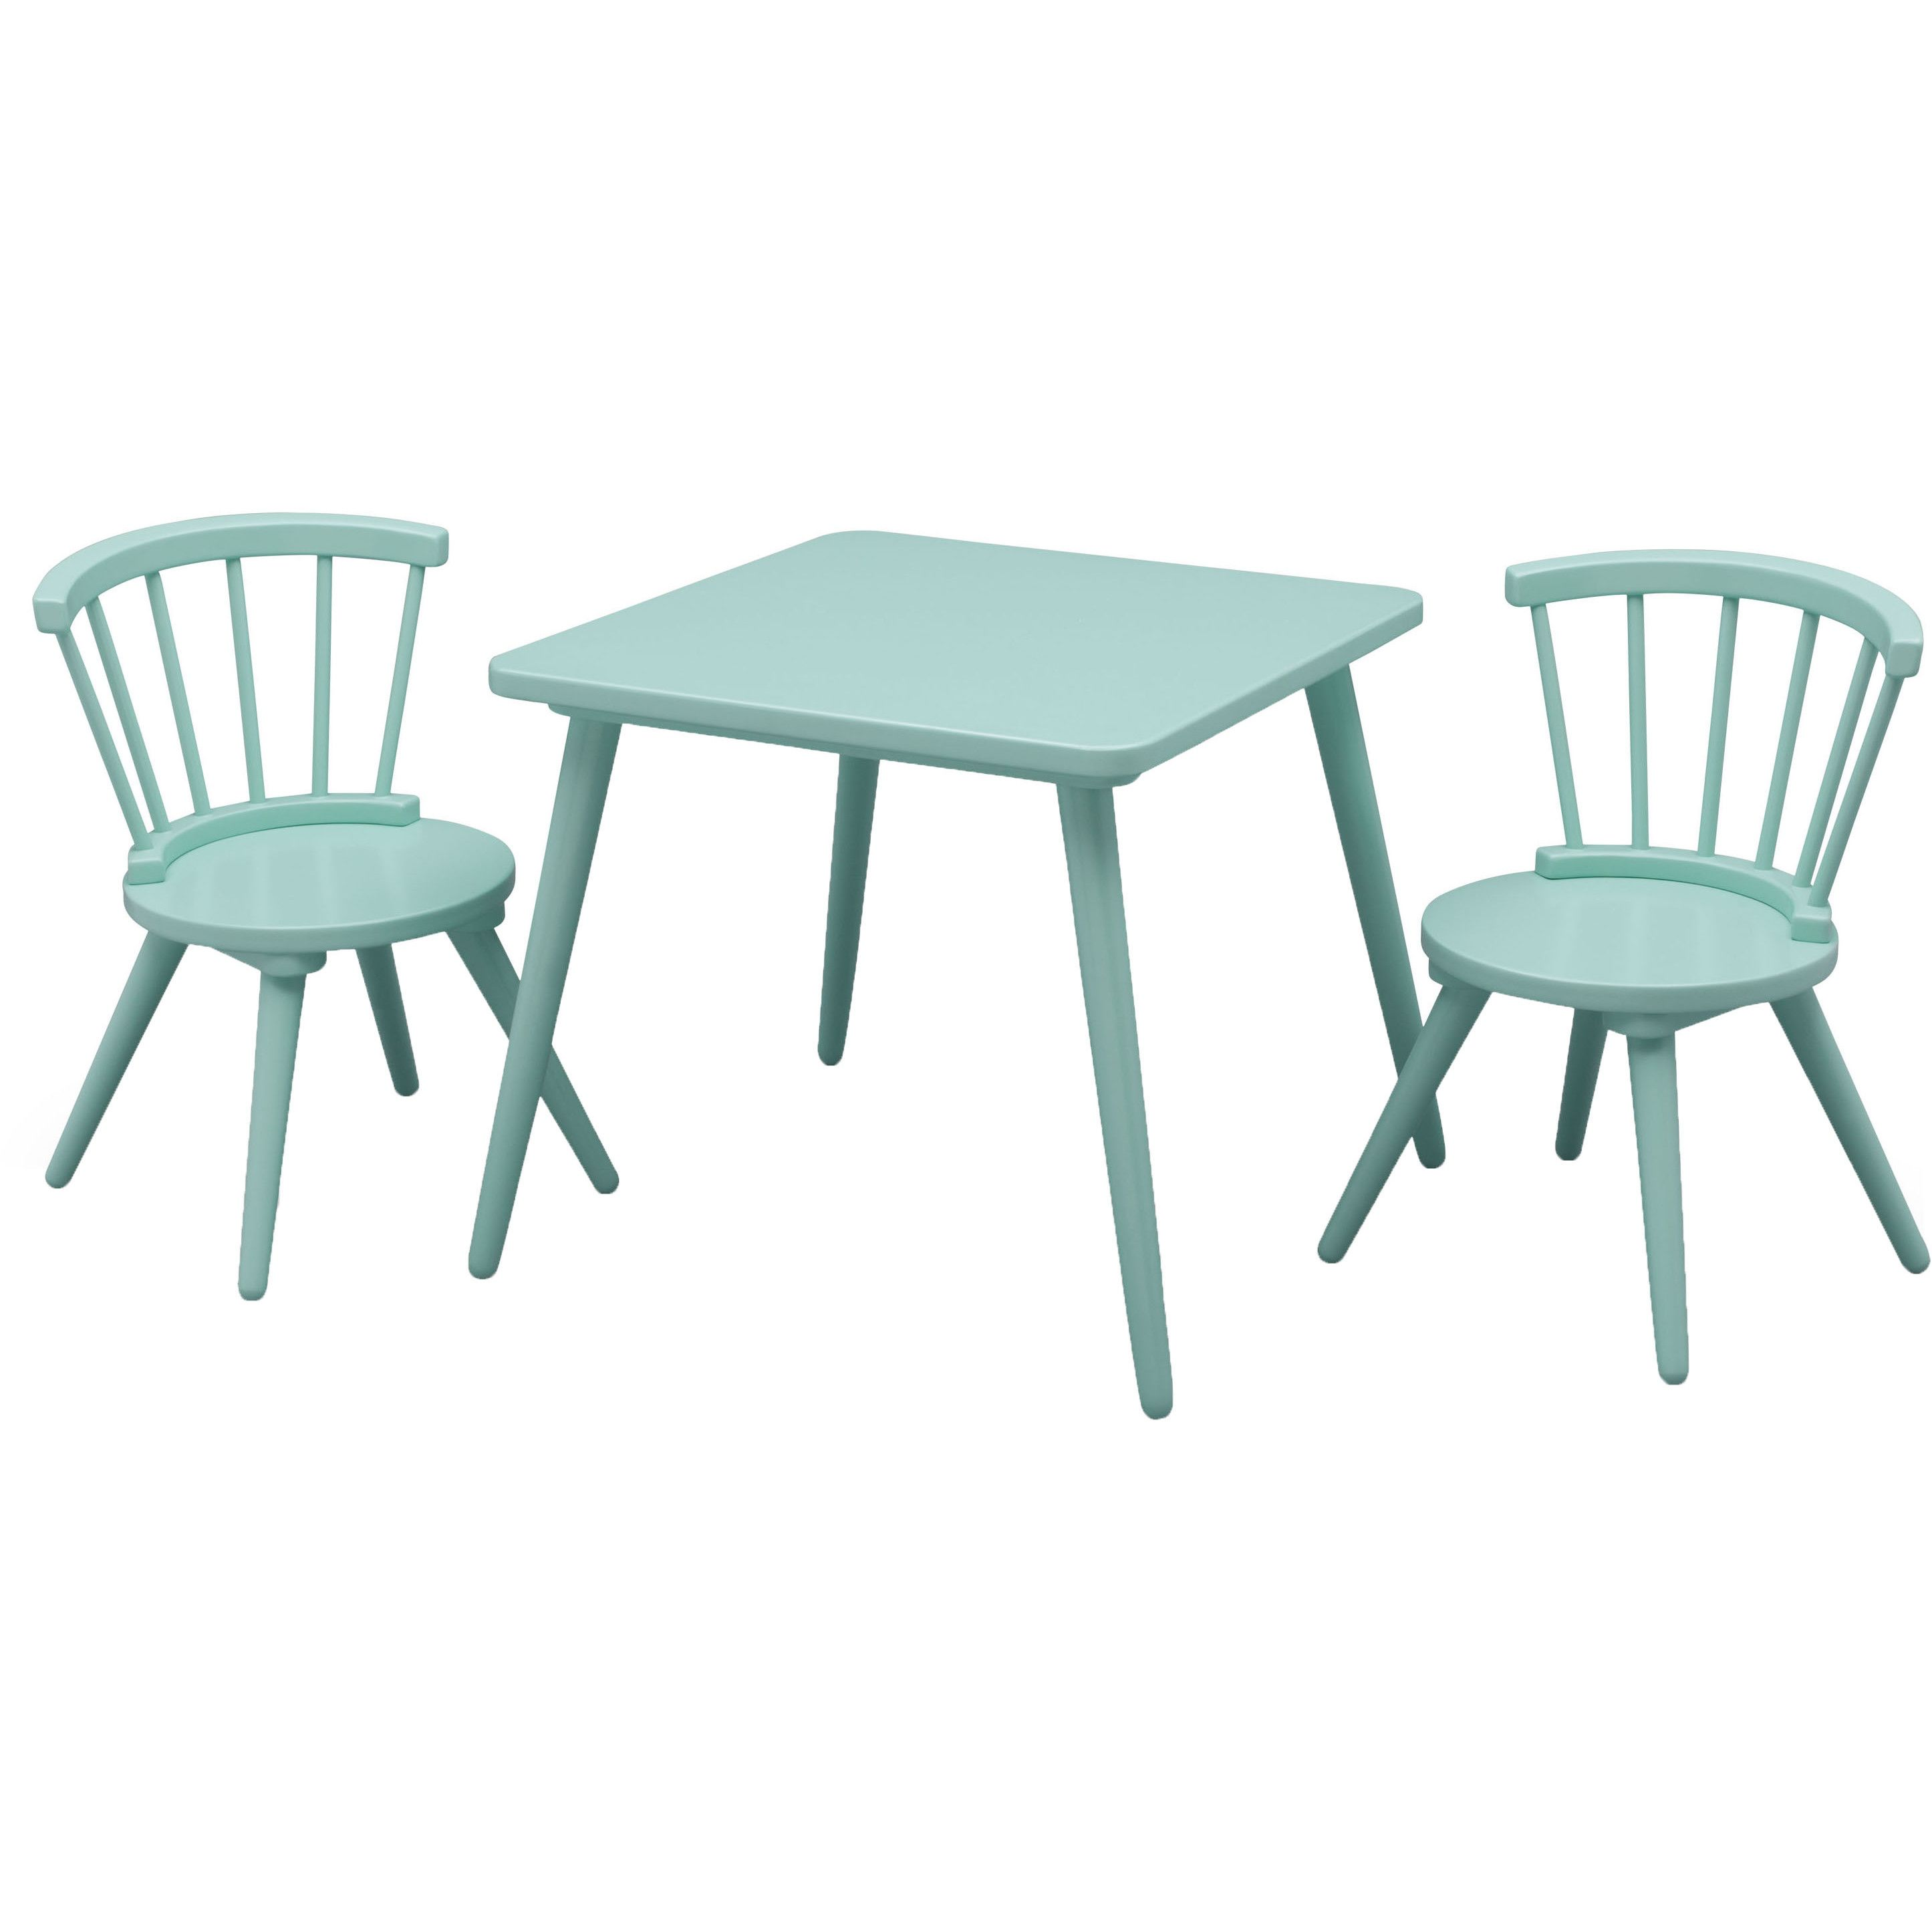 Justine Windsor 3 Piece Table and Chair Set by Delta  sc 1 st  Pinterest & Justine Windsor 3 Piece Table and Chair Set by Delta | Windsor F.C. ...